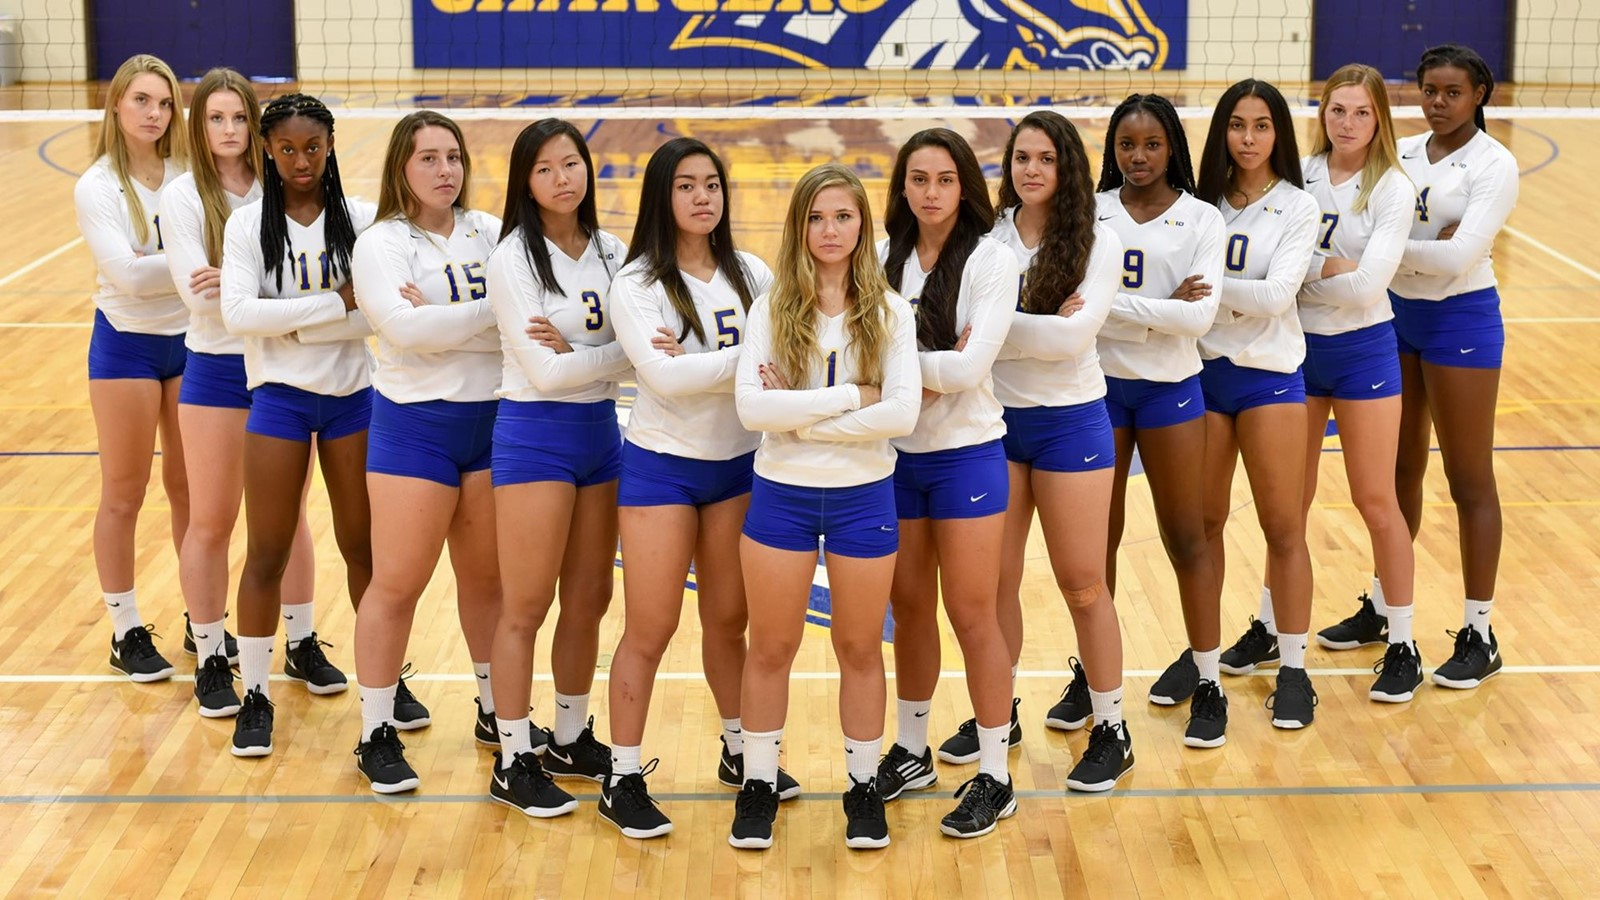 ddcf079709a 2018 Women s Volleyball Roster - University of New Haven Athletics